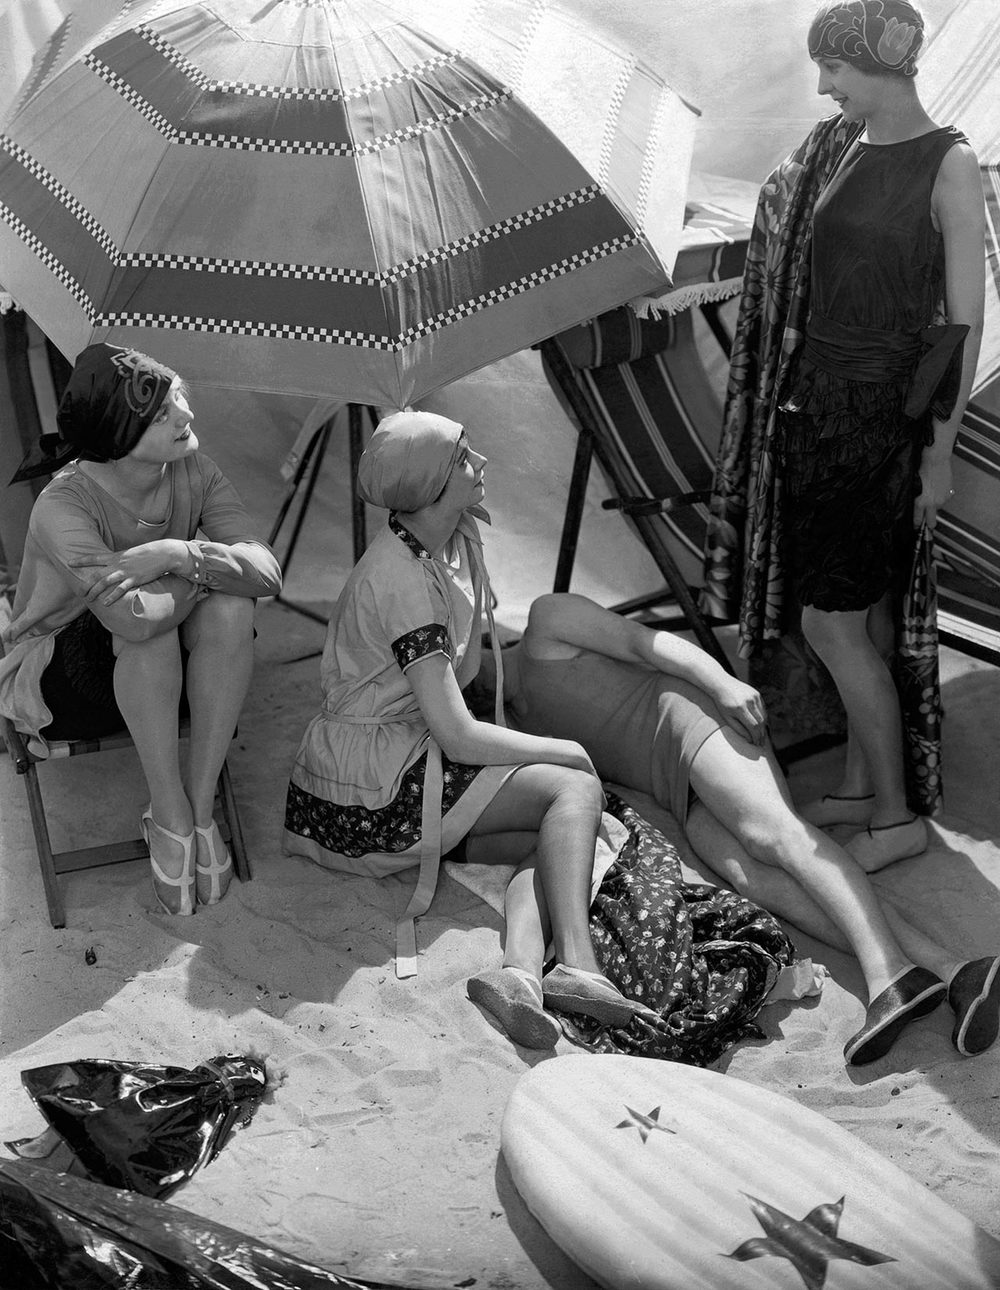 Beachwear circa 1925, photographed by Edward Steichen.